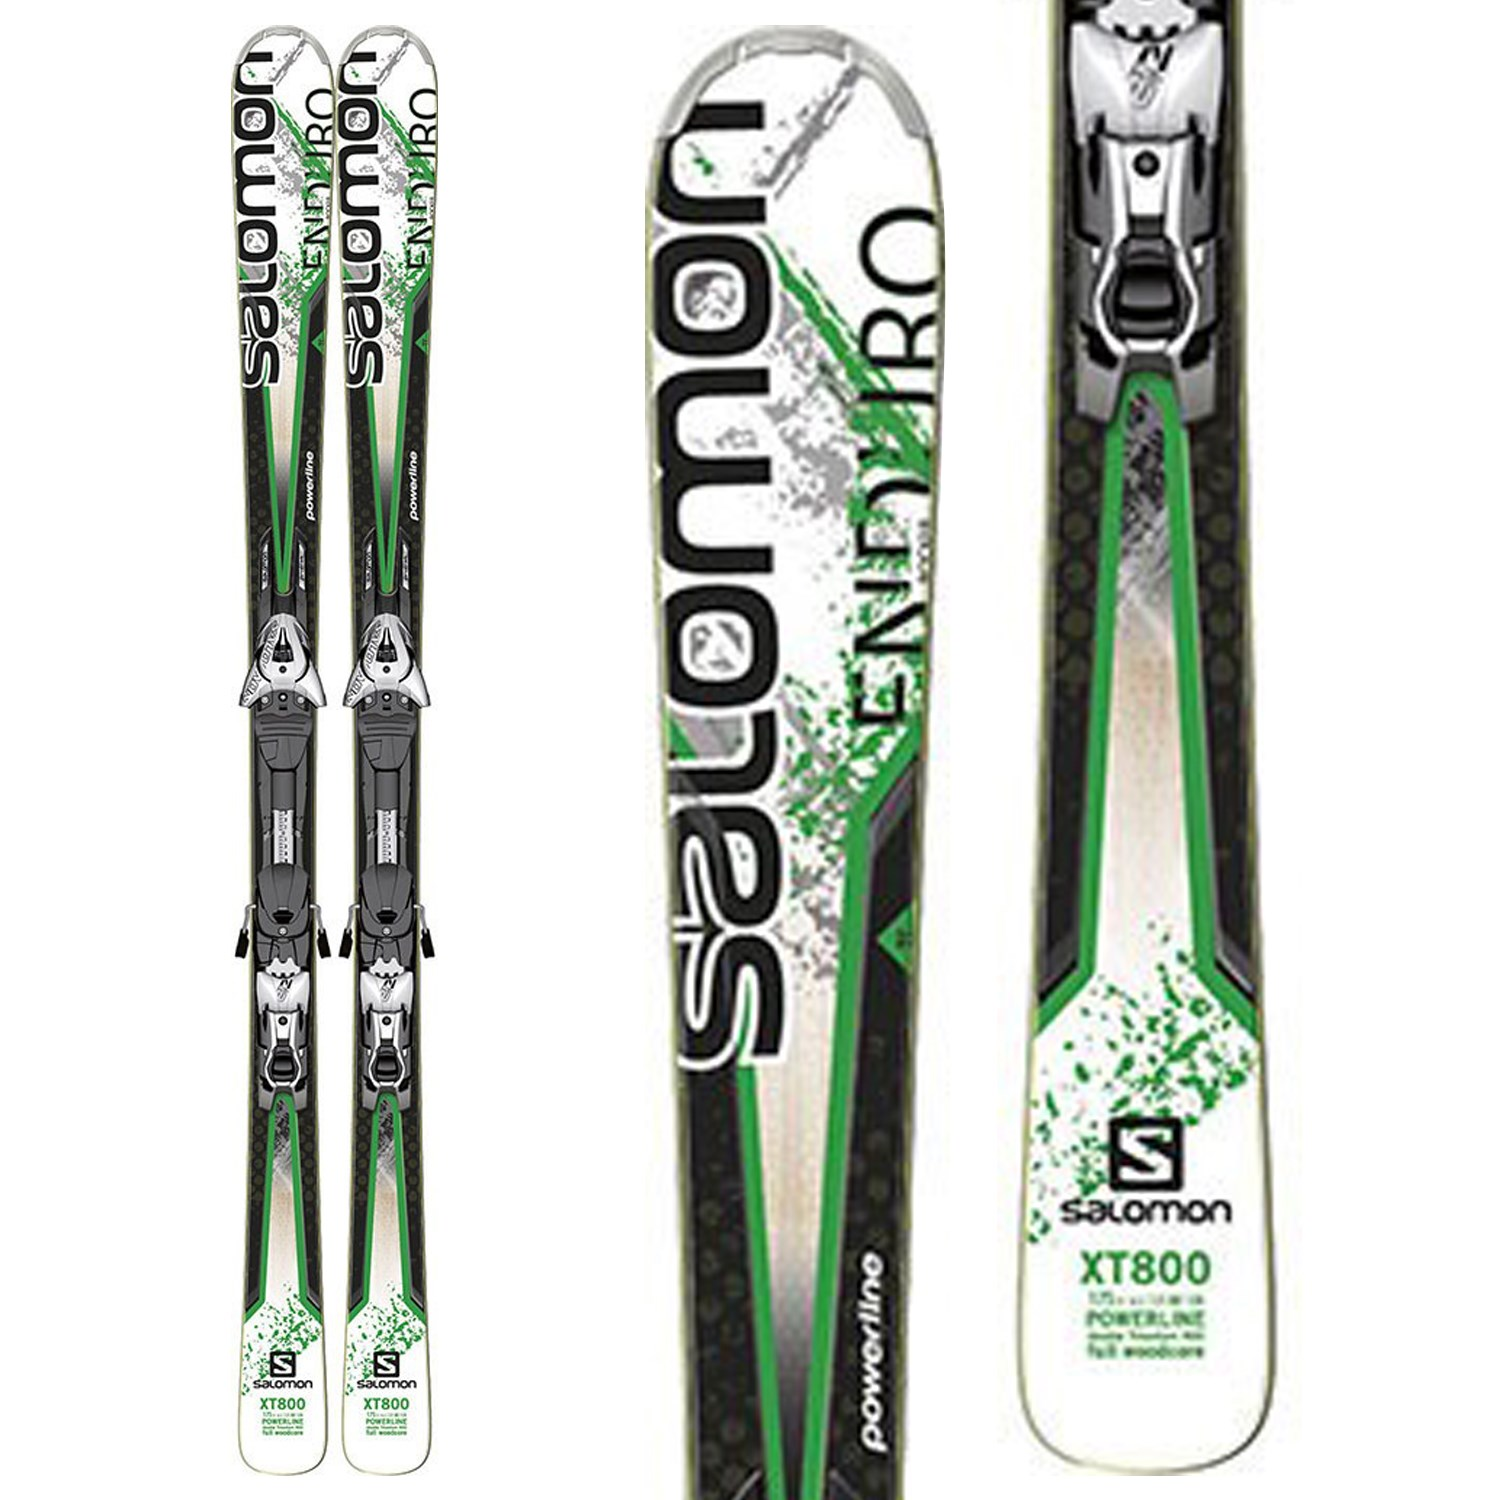 closer at new style official Salomon Enduro XT 800 Skis + Z12 Demo Bindings - Used 2013 ...